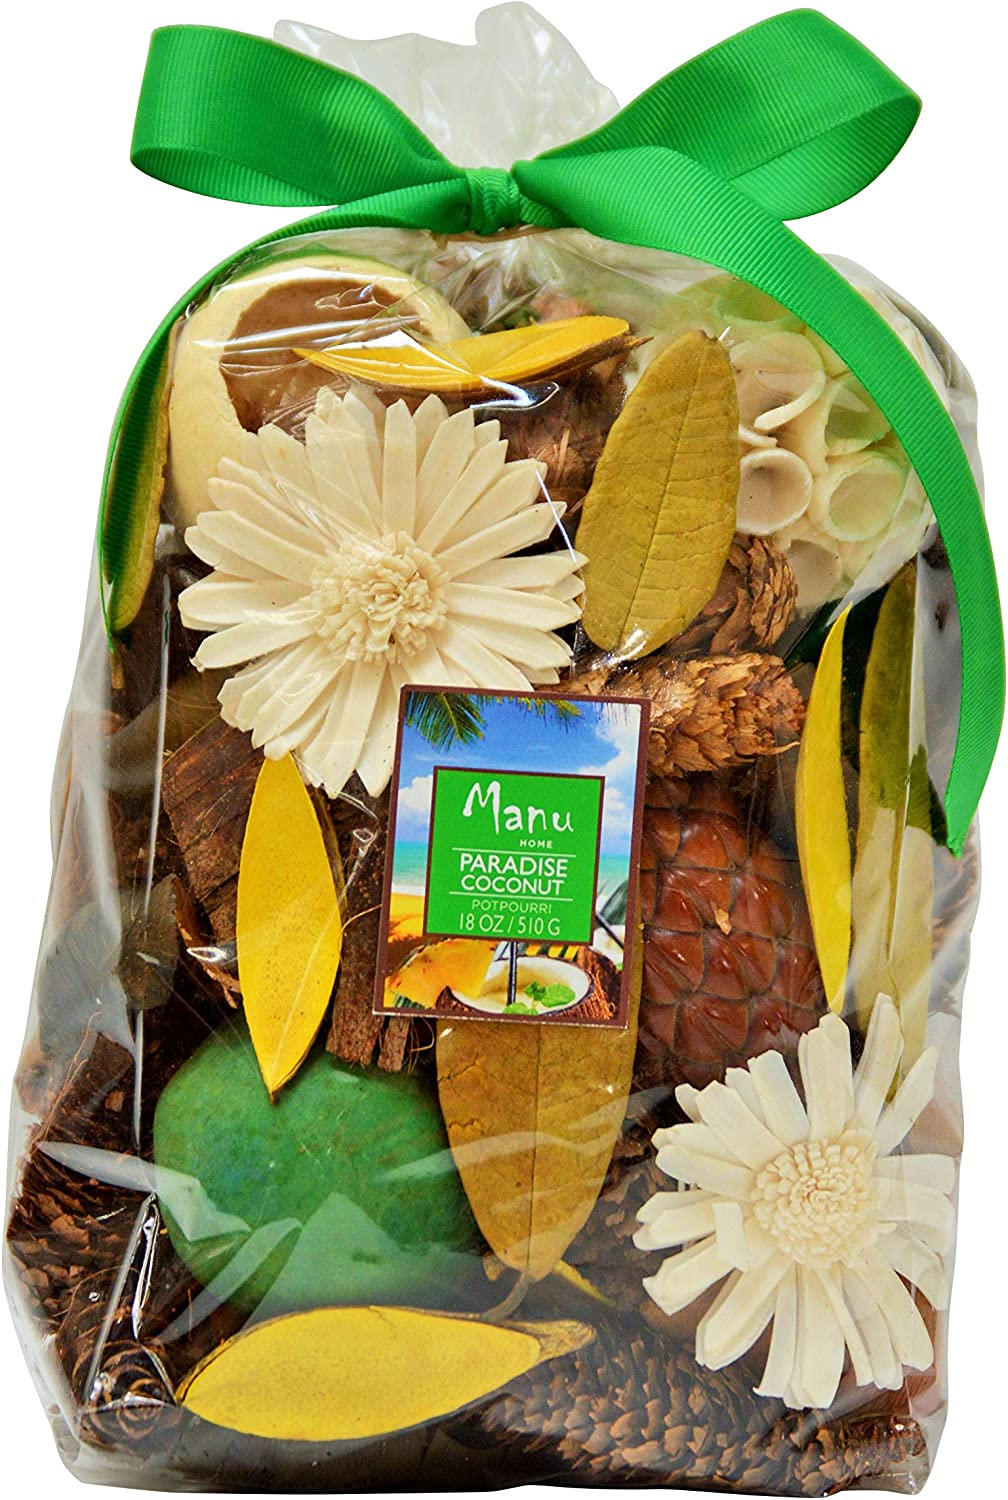 Manu Home Paradise Coconut Potpourri Bag ~ The Scent is a Soft Blend of Coconut and Vanilla ~ Proudly Made in The USA